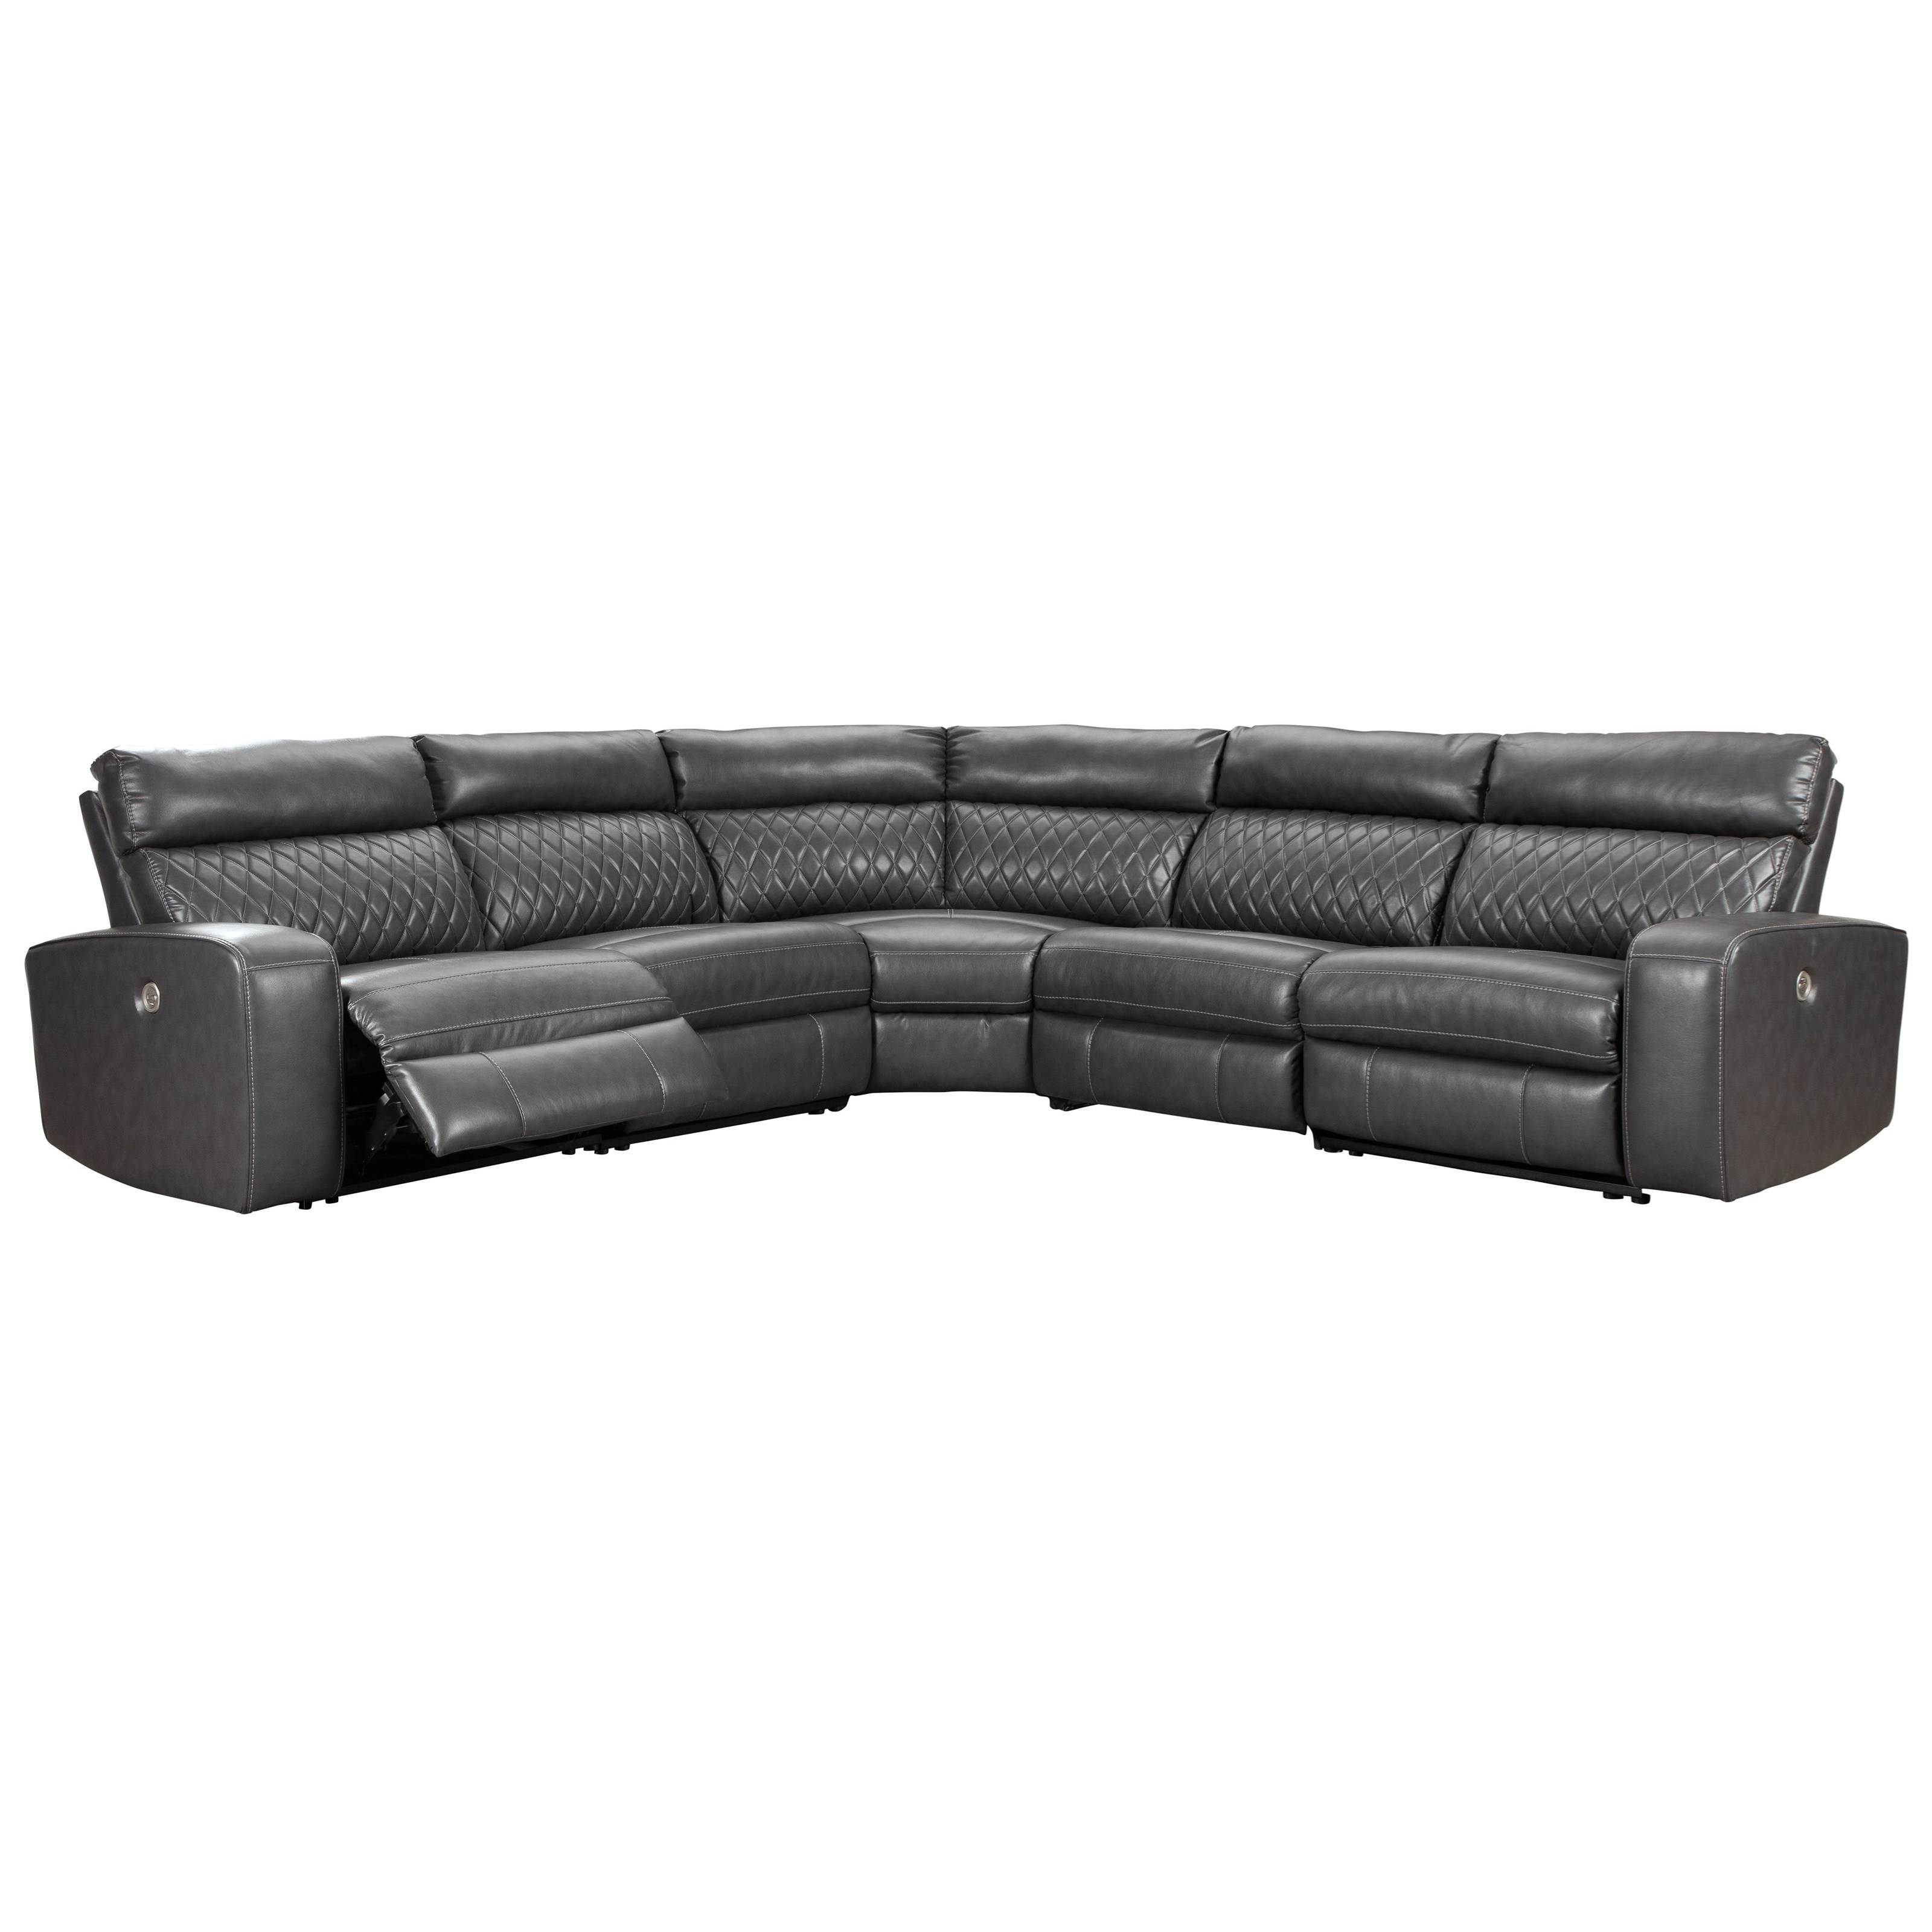 Samperstone Power Reclining Sectional Sofa by Signature Design by Ashley at Home Furnishings Direct